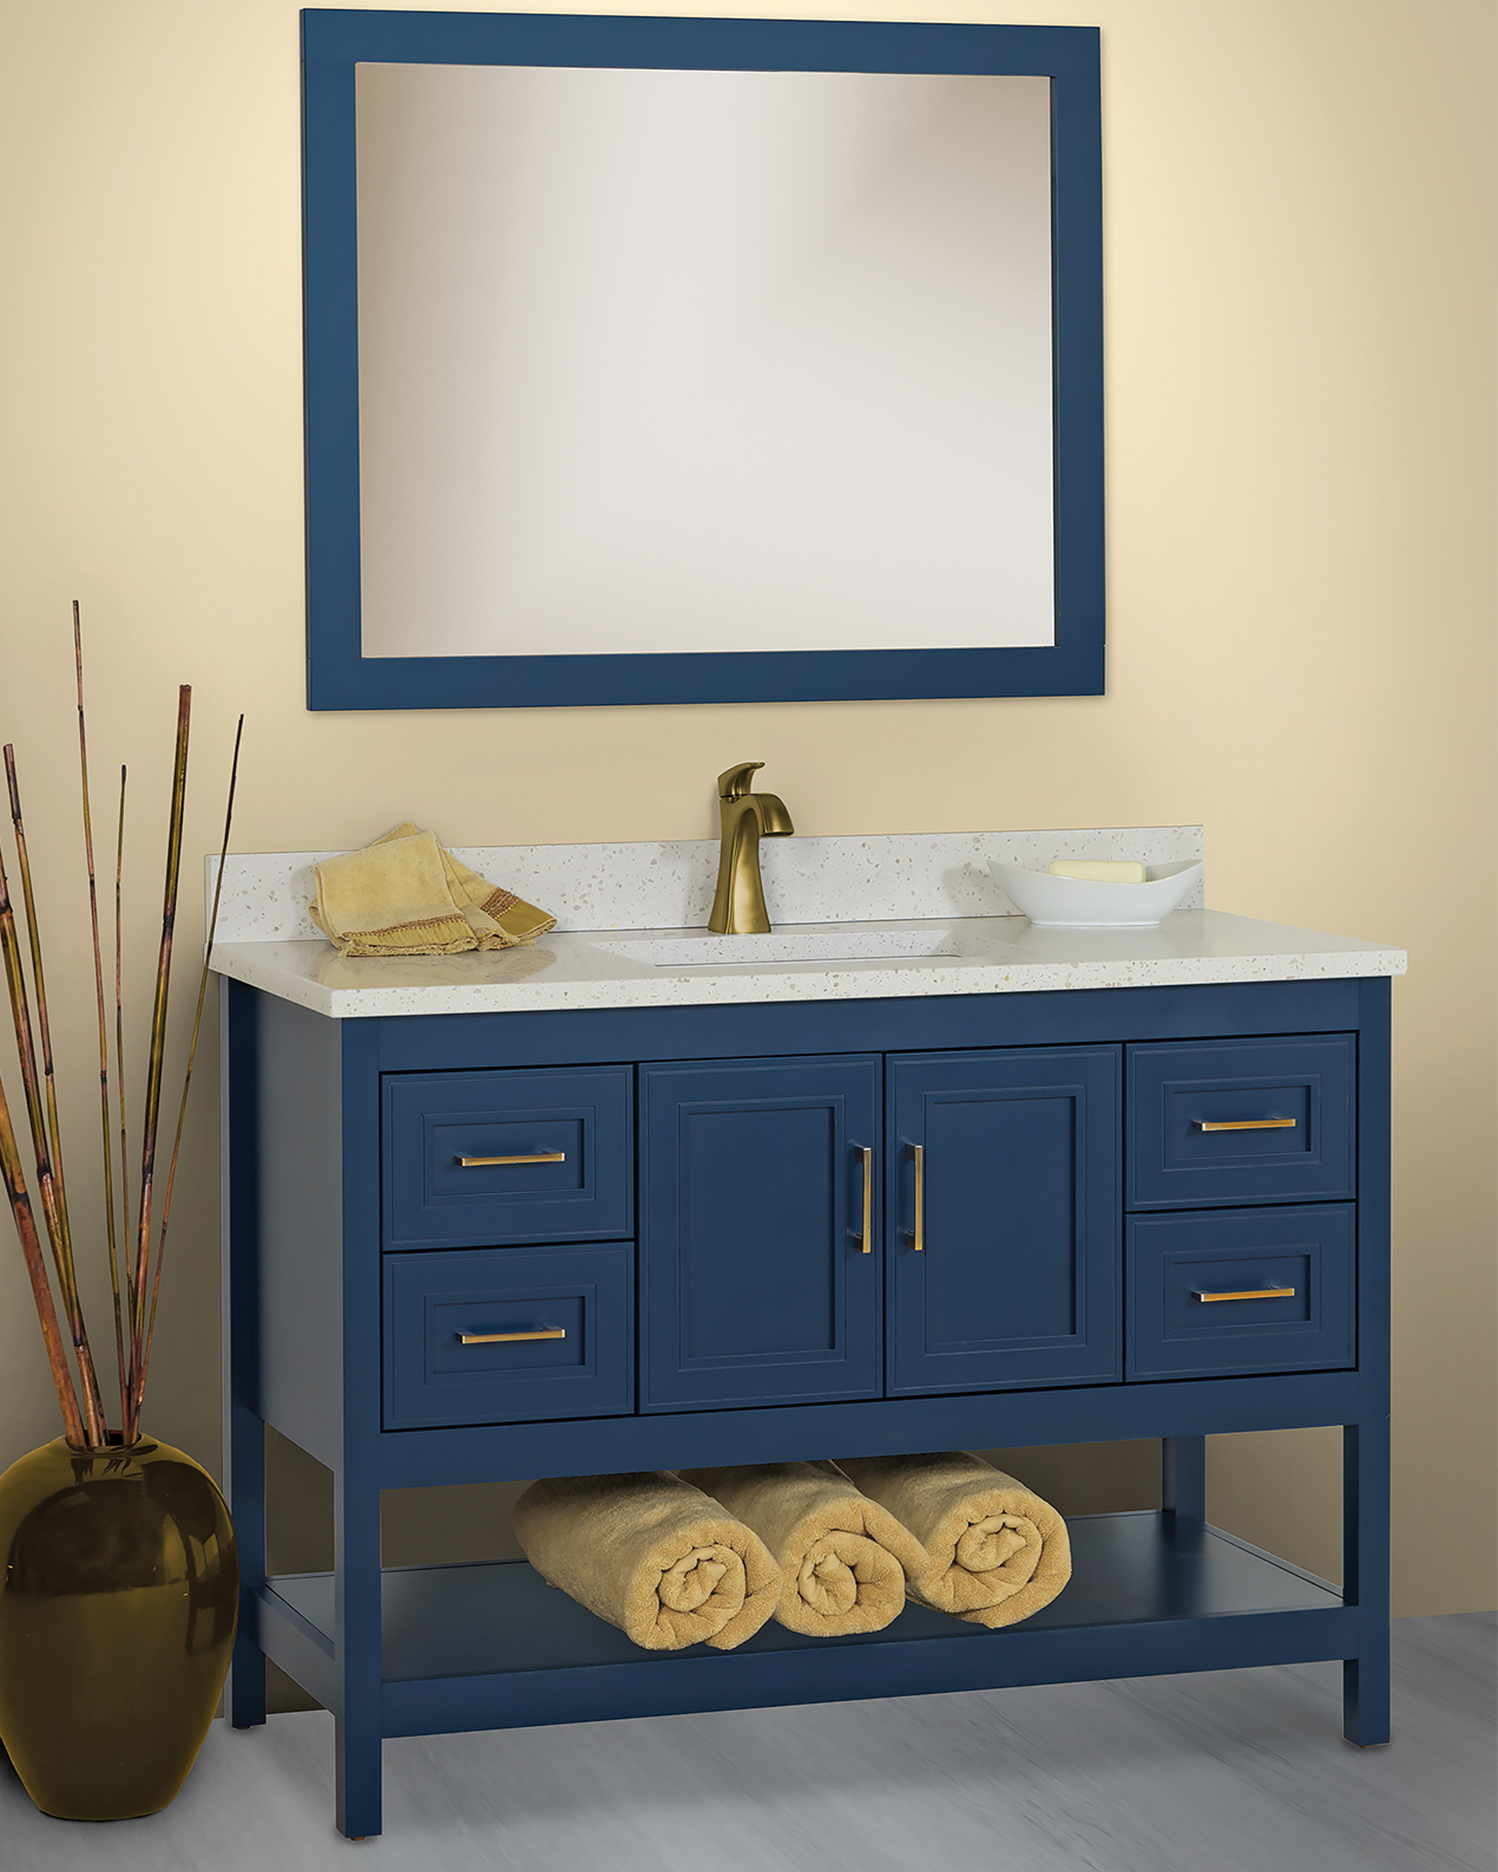 Strasser Woodenworks introduced a new finish for its solid wood bathroom vanities.